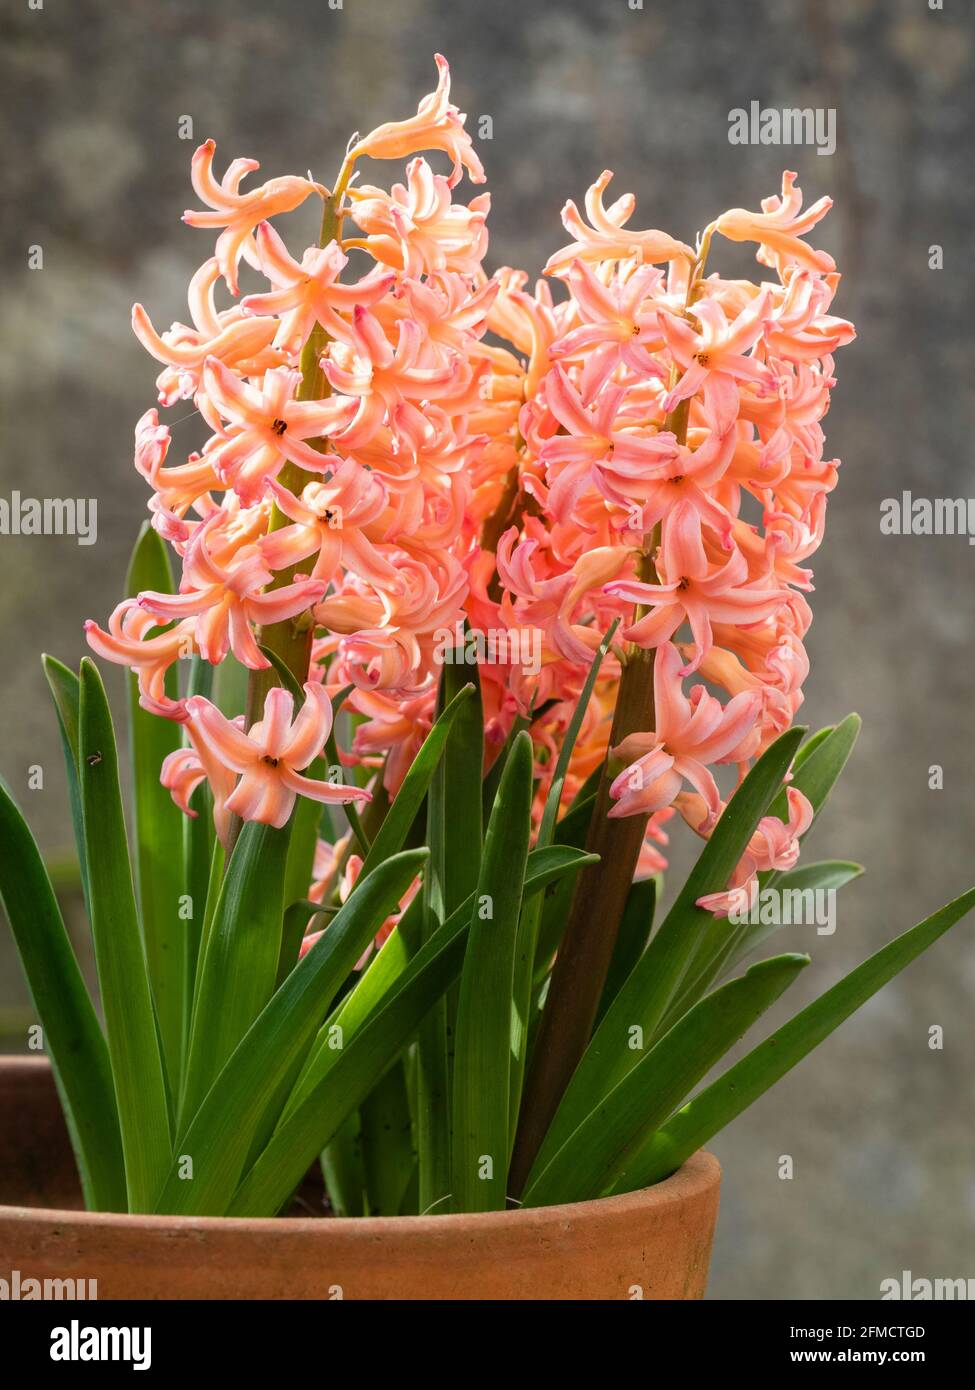 Dense racemes of peach flowers of the spring blooming hardy bulb hyacinth, Hyacinthus orientalis 'Gipsy Queen' Stock Photo